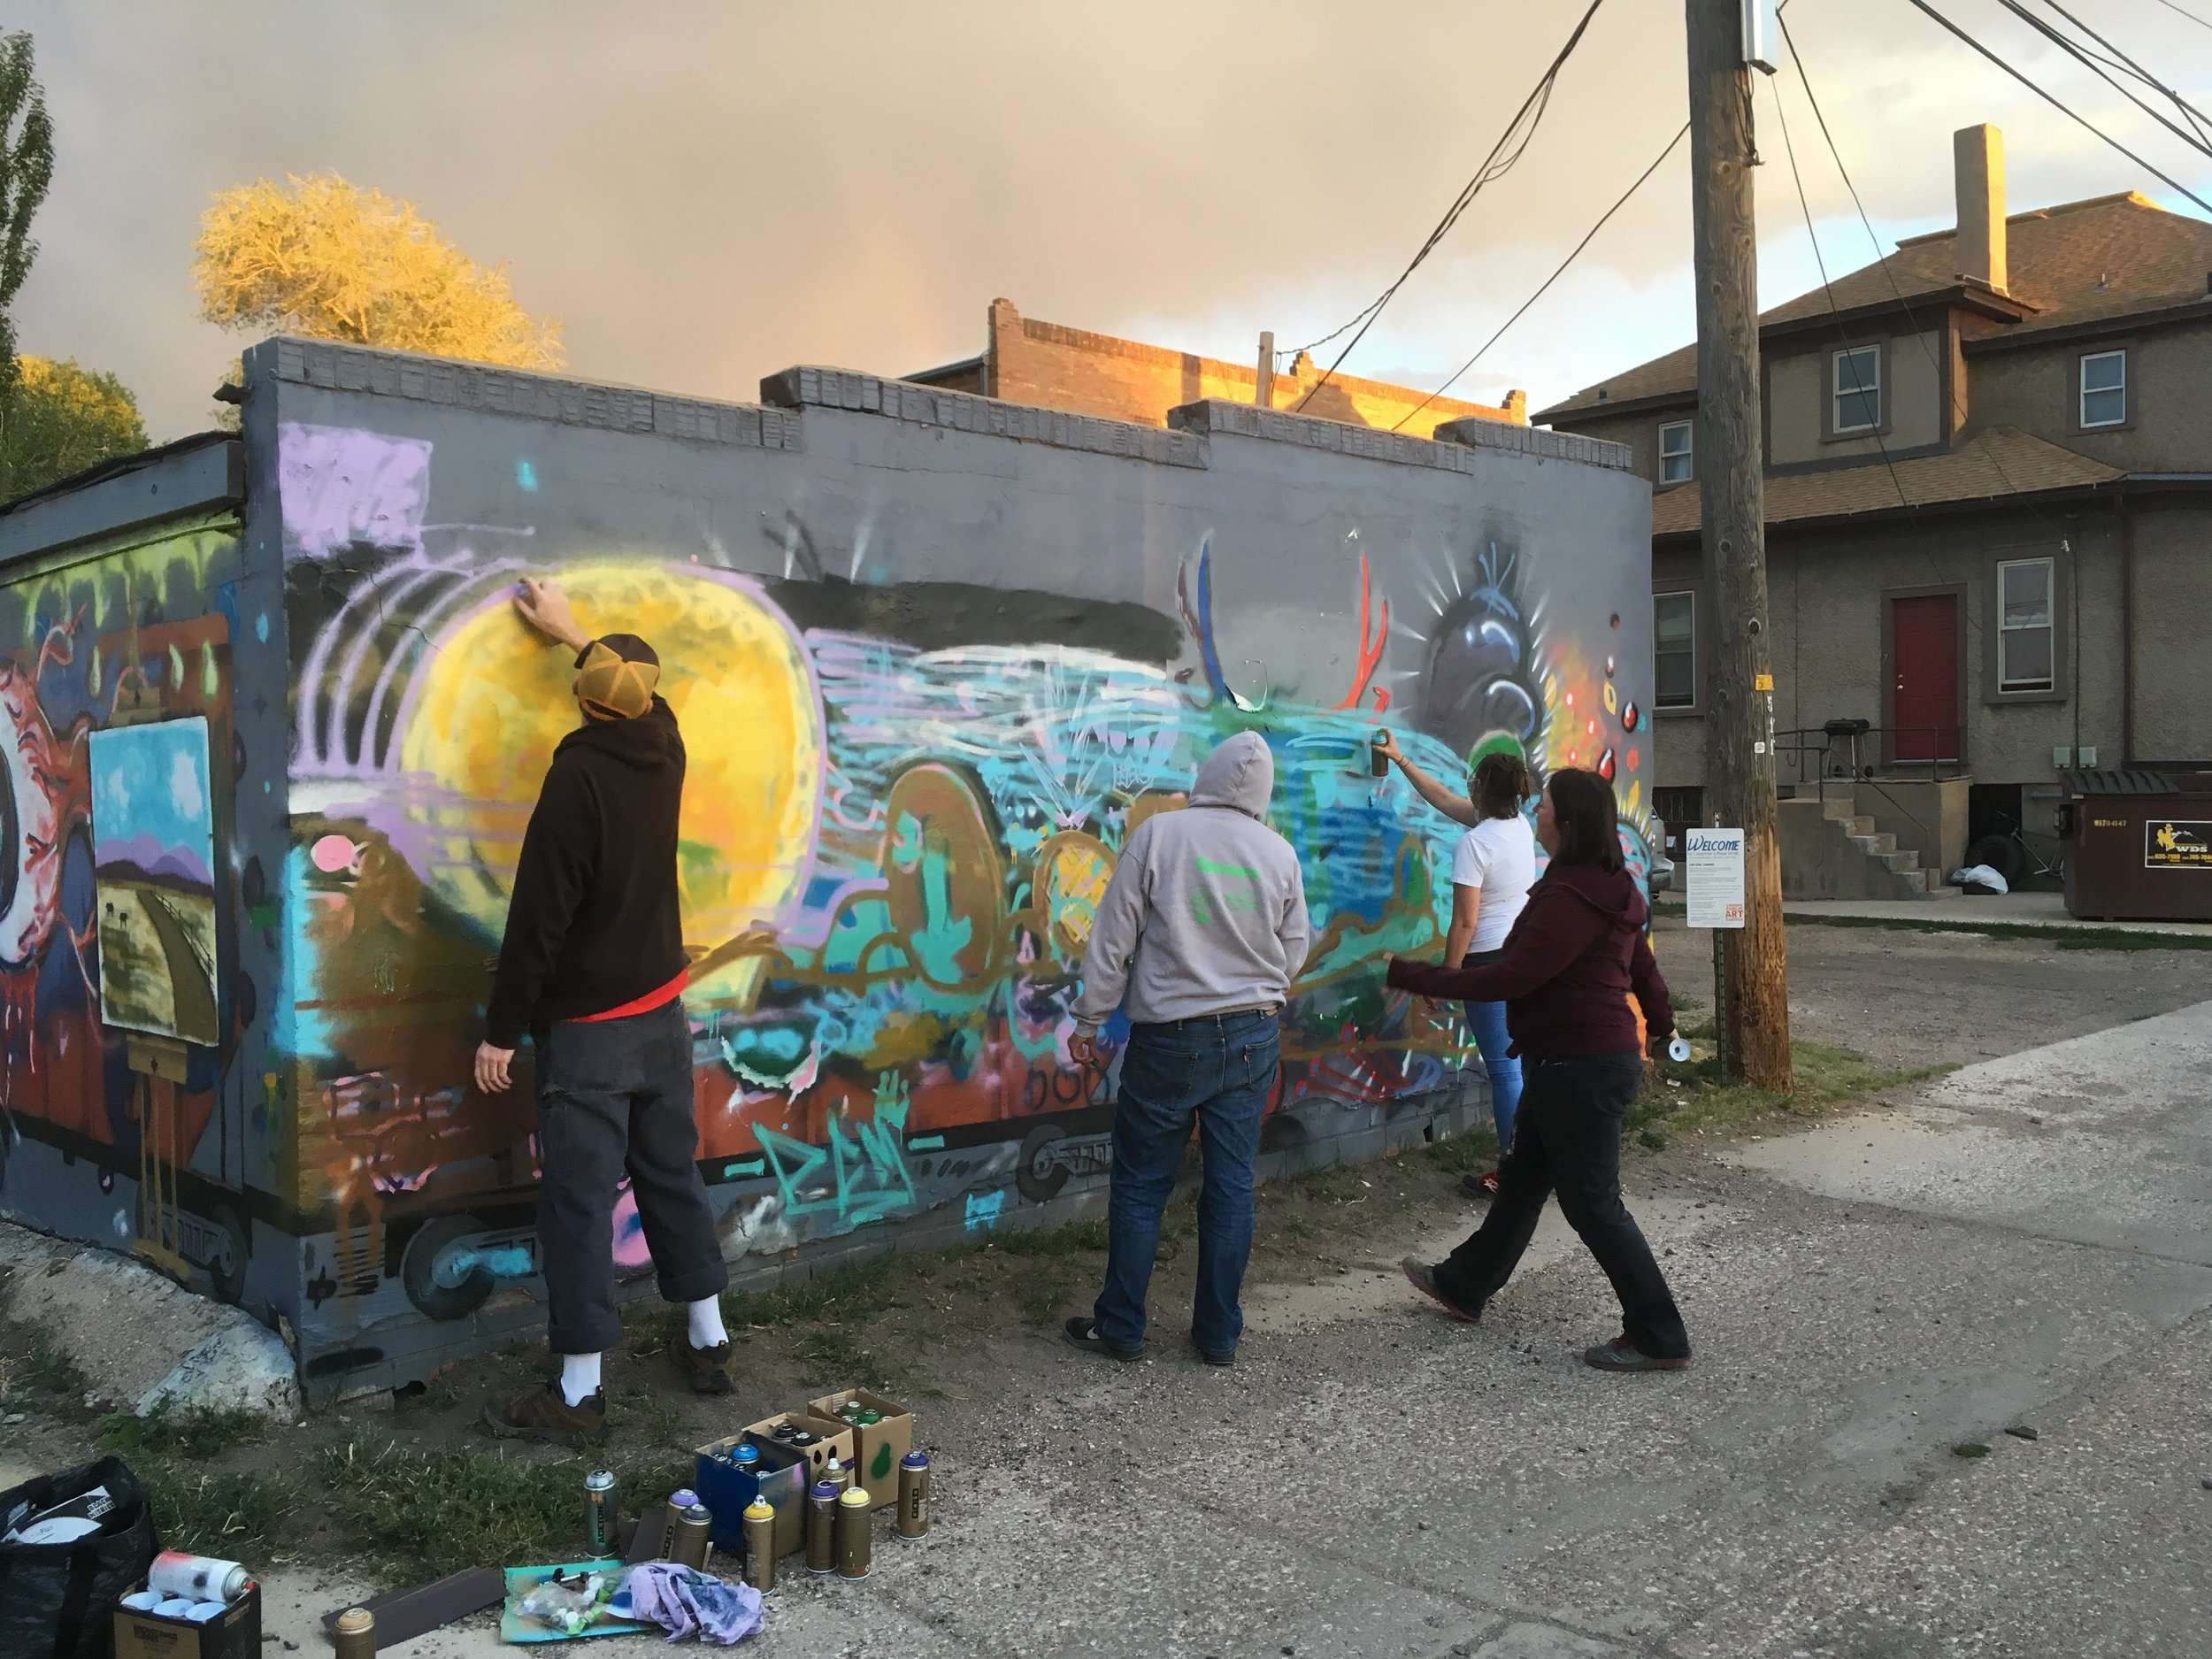 Artists work on a group mural at the end of Dan Toro's spray paint workshop in Sept 2018. Mural inspired by Vedauwoo.